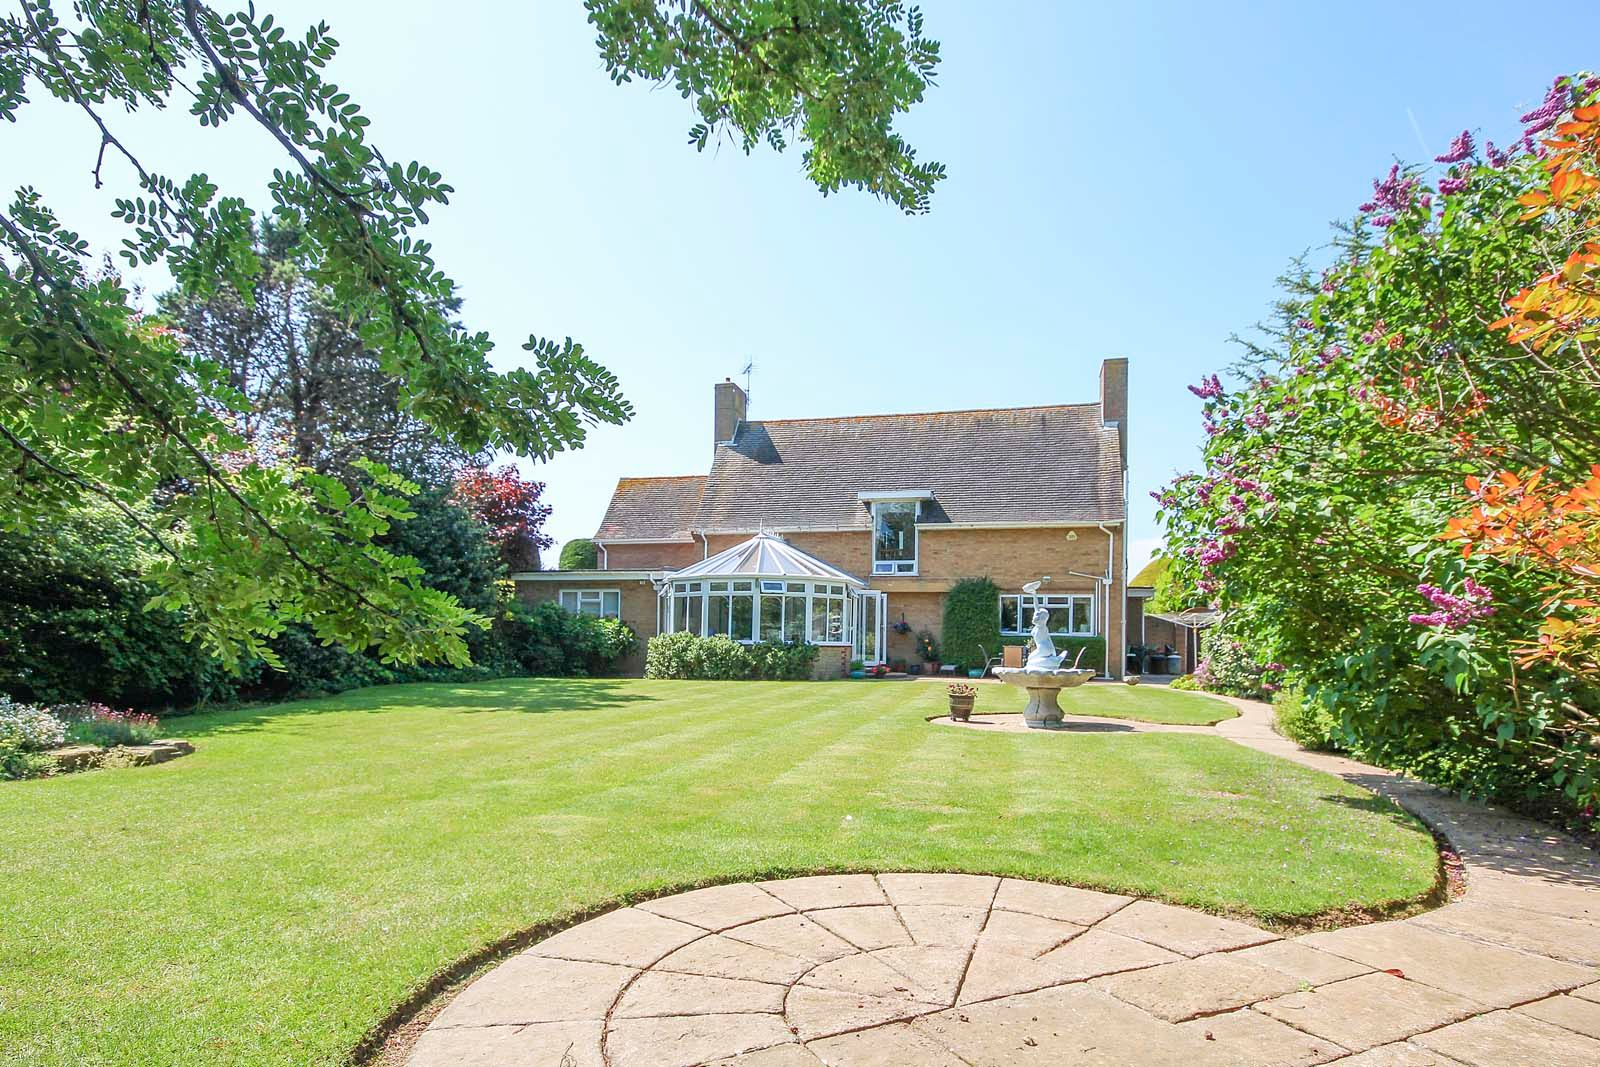 5 bed House for sale in The Willowhayne, East Preston - Rear garden (Property Image 1)